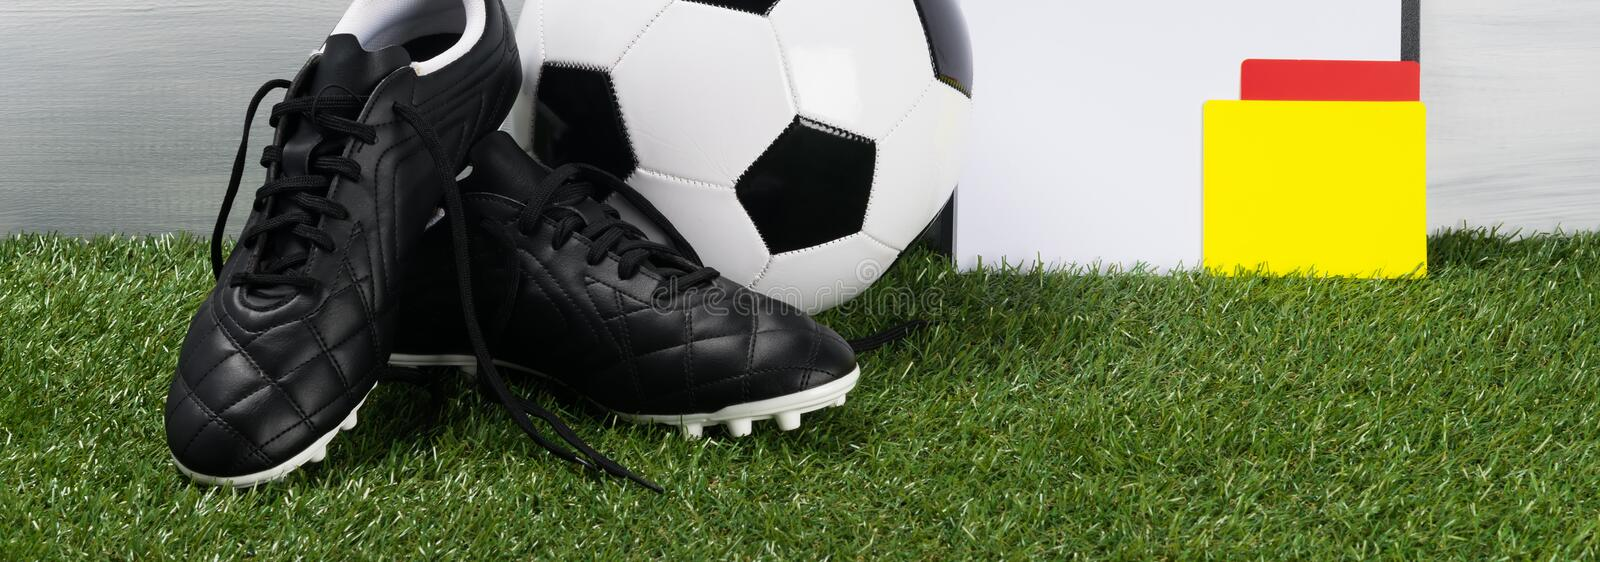 Ball and leather shoes for football with a judge card on the green grass royalty free stock photography